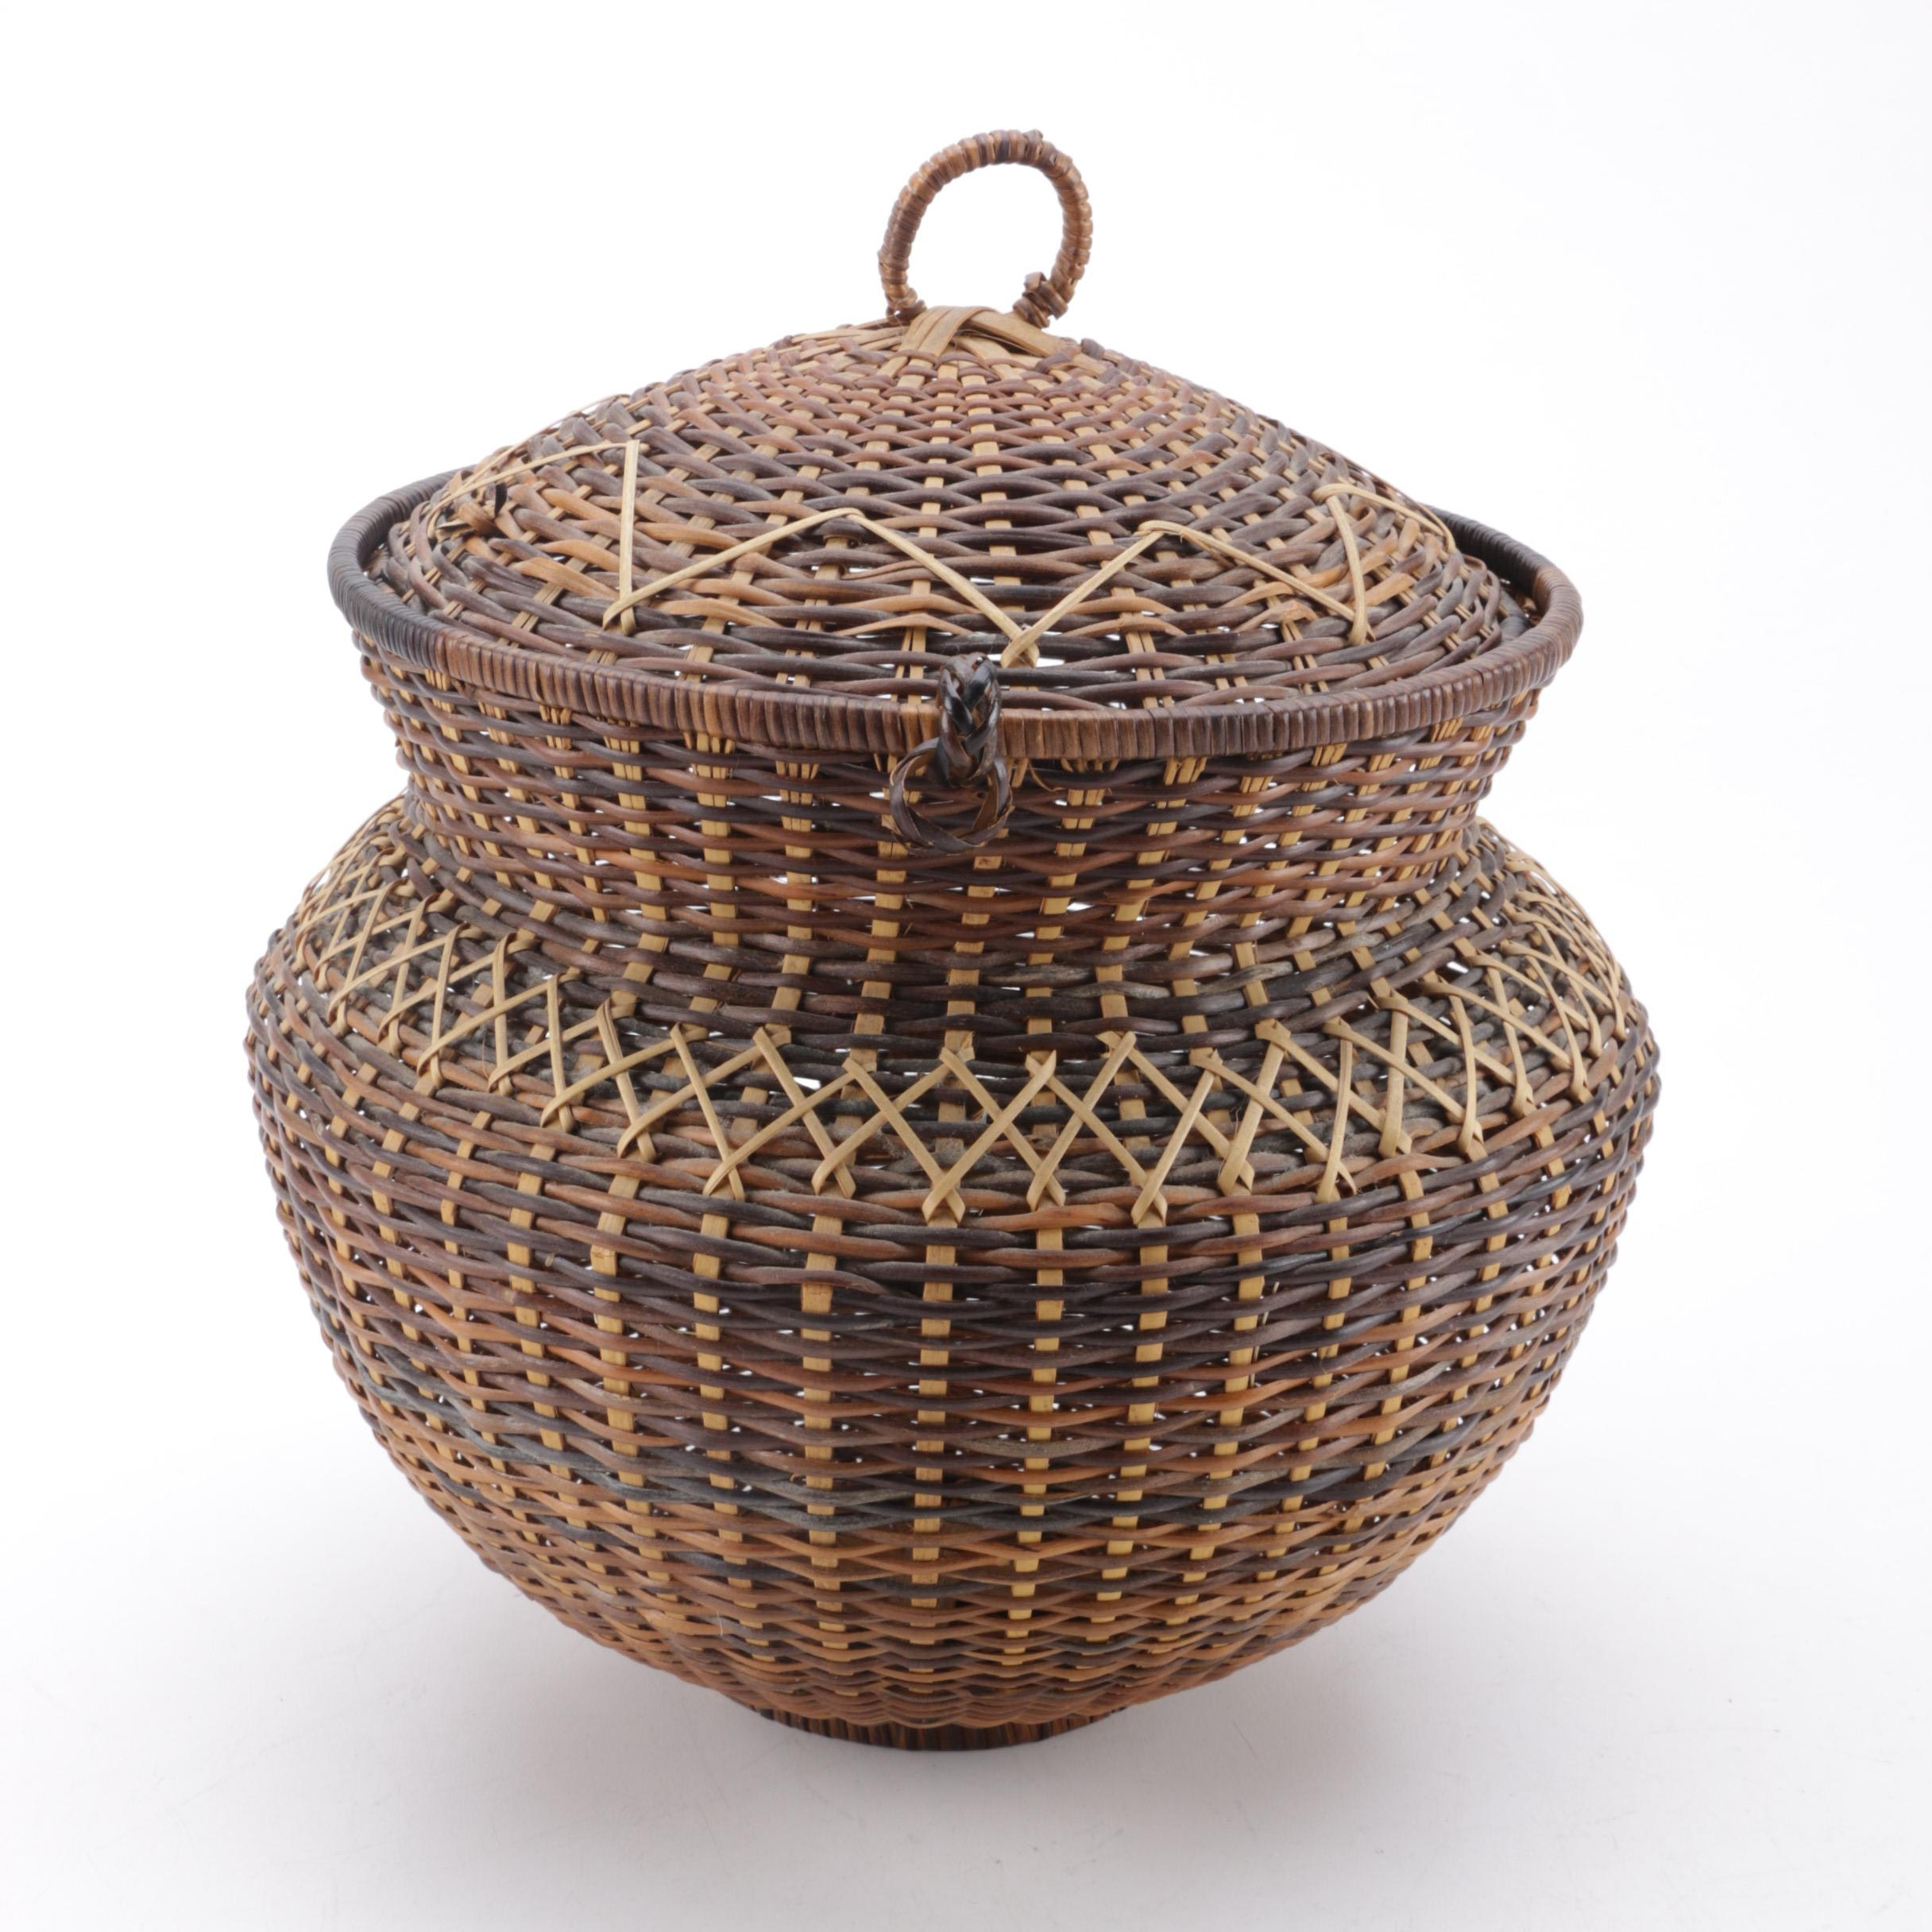 Woven Basket with Lid and Handle